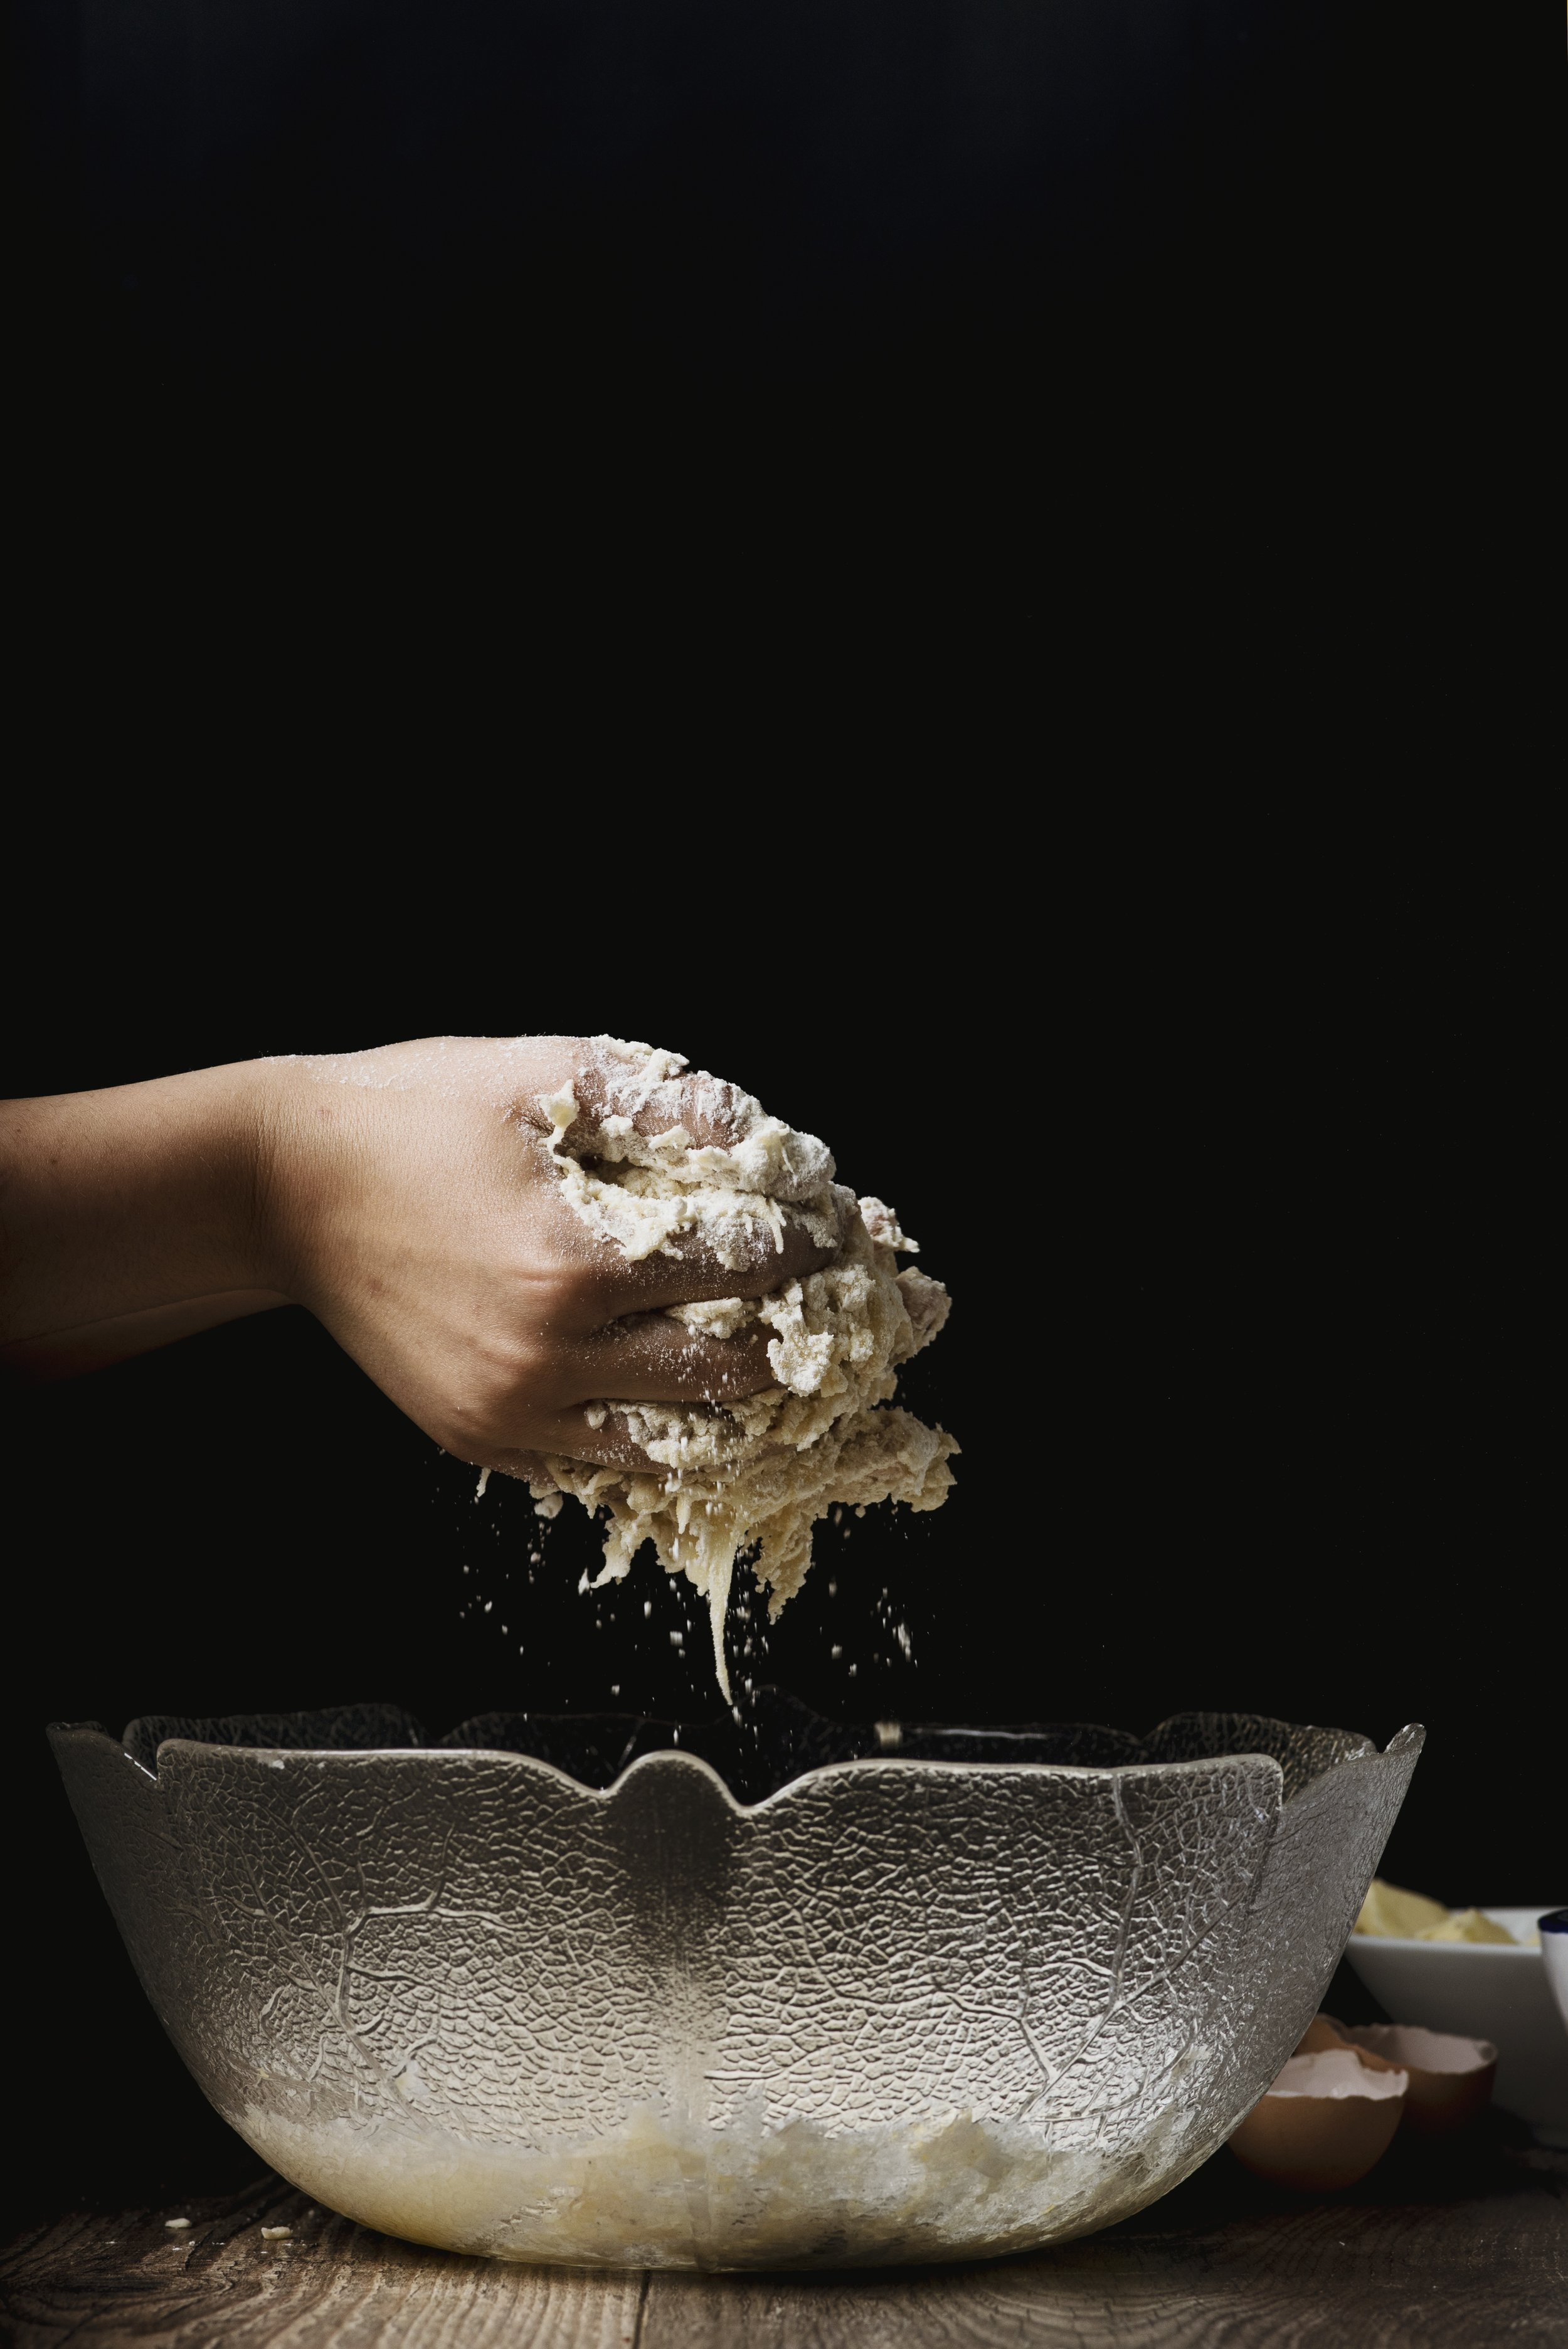 boss-fight-free-high-quality-stock-images-photos-photography-dough-cooking-kneeding.jpg